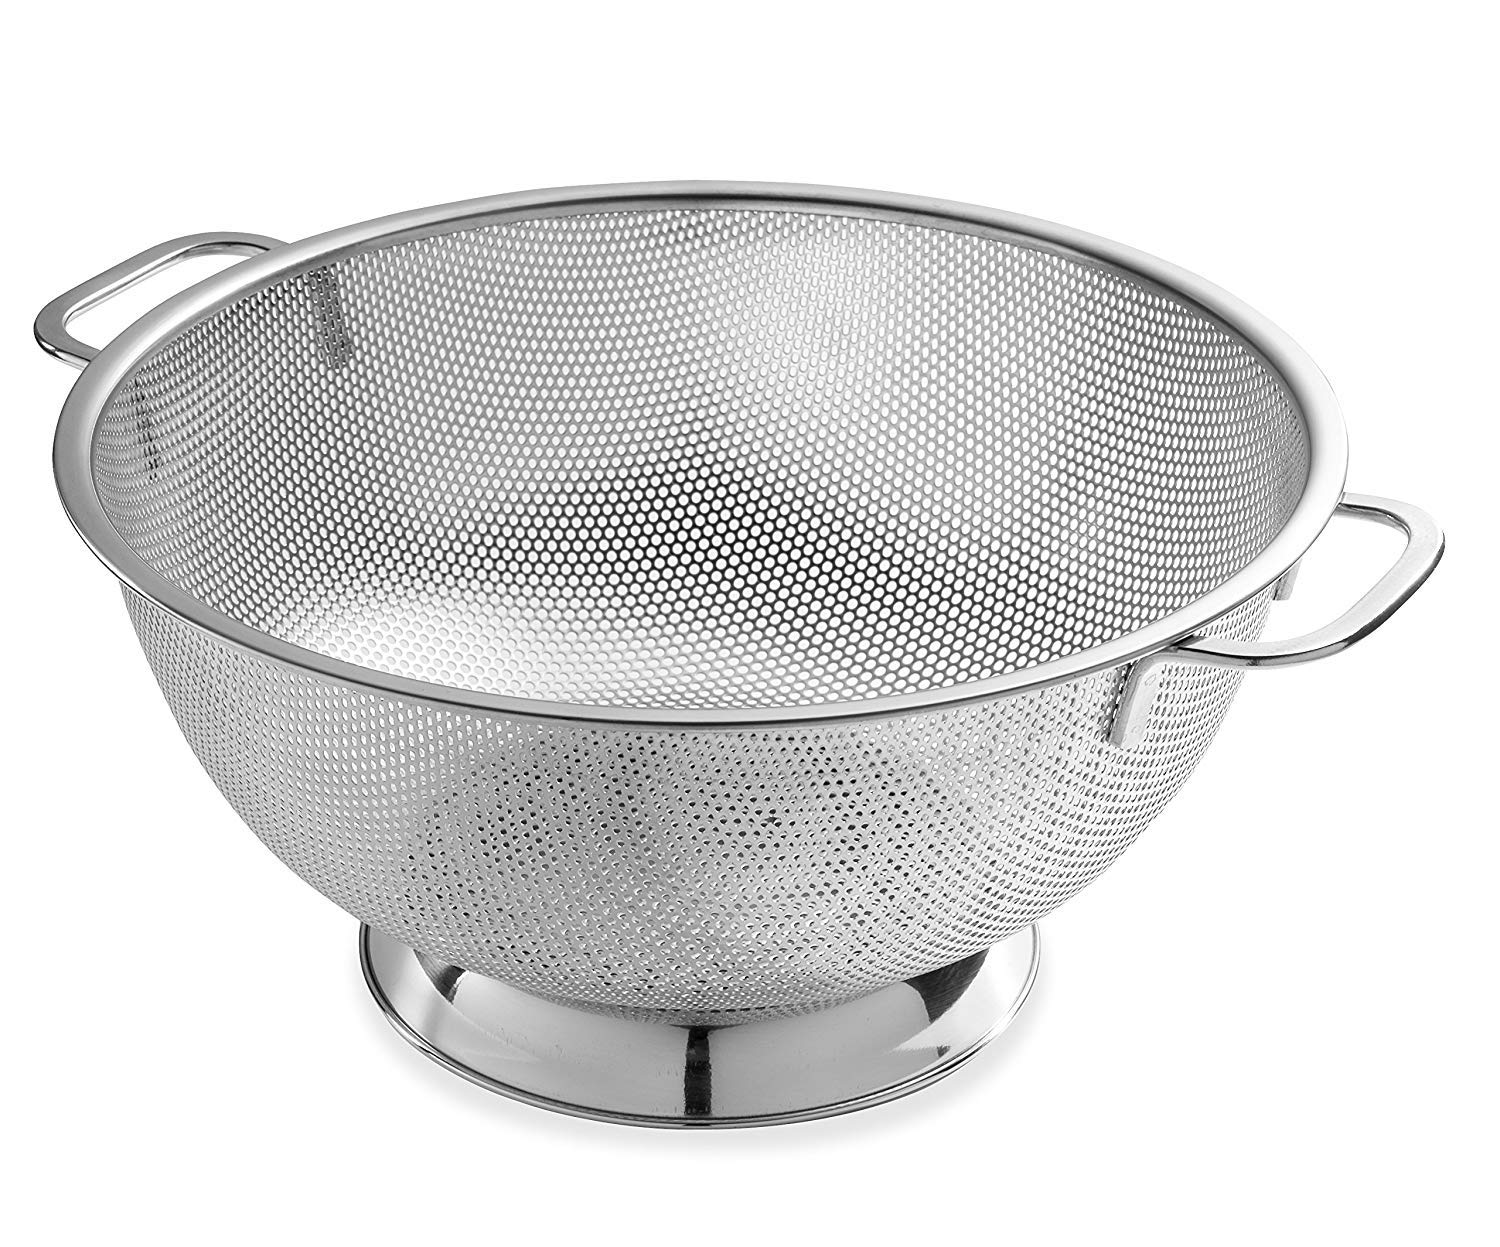 Bellemain Micro-perforated Stainless Steel 5-quart Colander-Dishwasher Safe by Bellemain